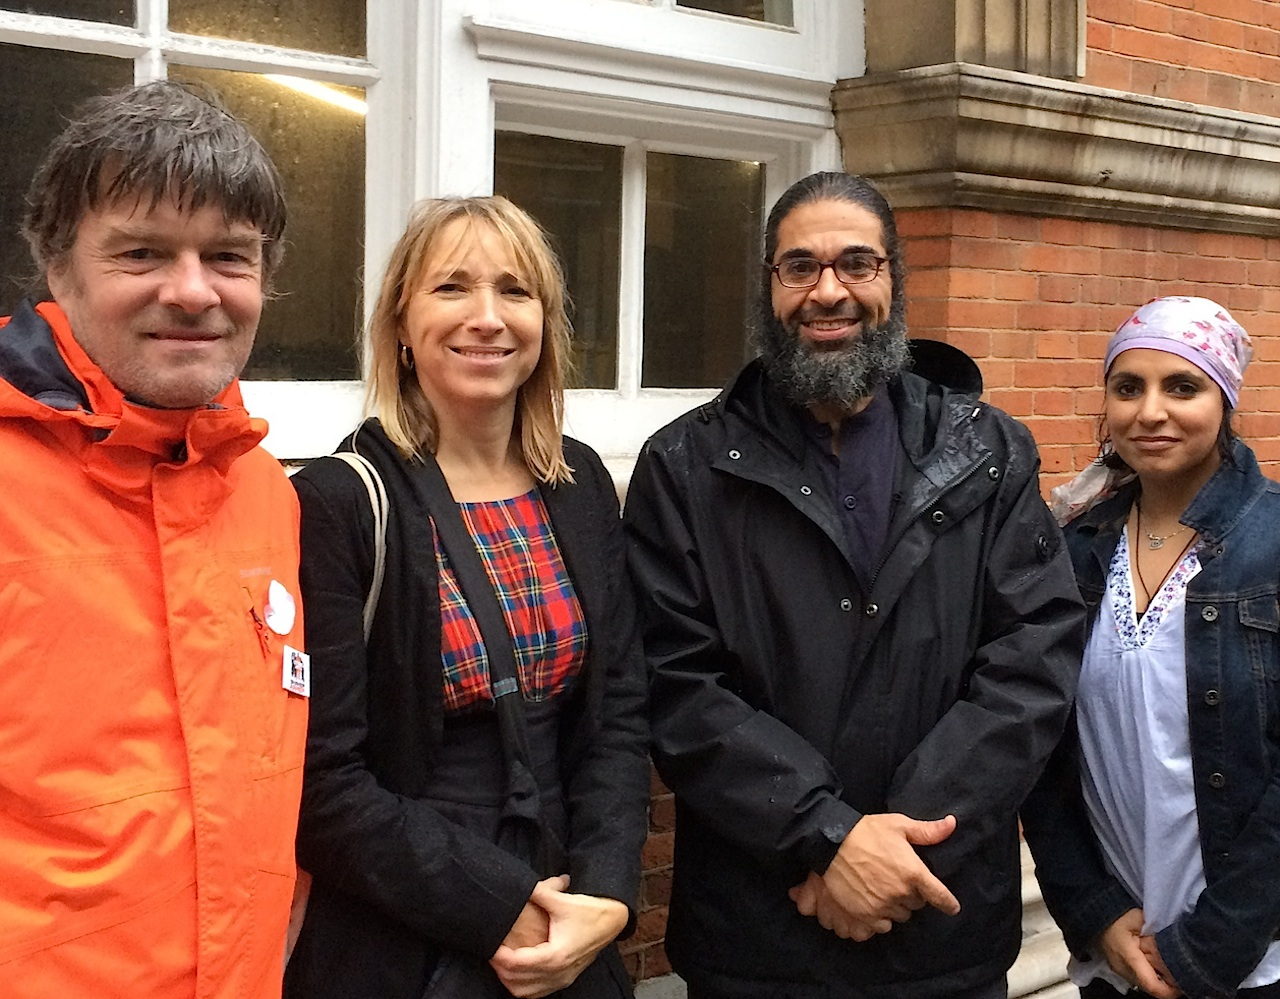 Andy Worthington, Joanne MacInnes, Shaker Aamer and doctor and journalist Saleyha Ahsan on November 17, 2015, after Shaker had met supporters and MPs in the Houses of Parliament.